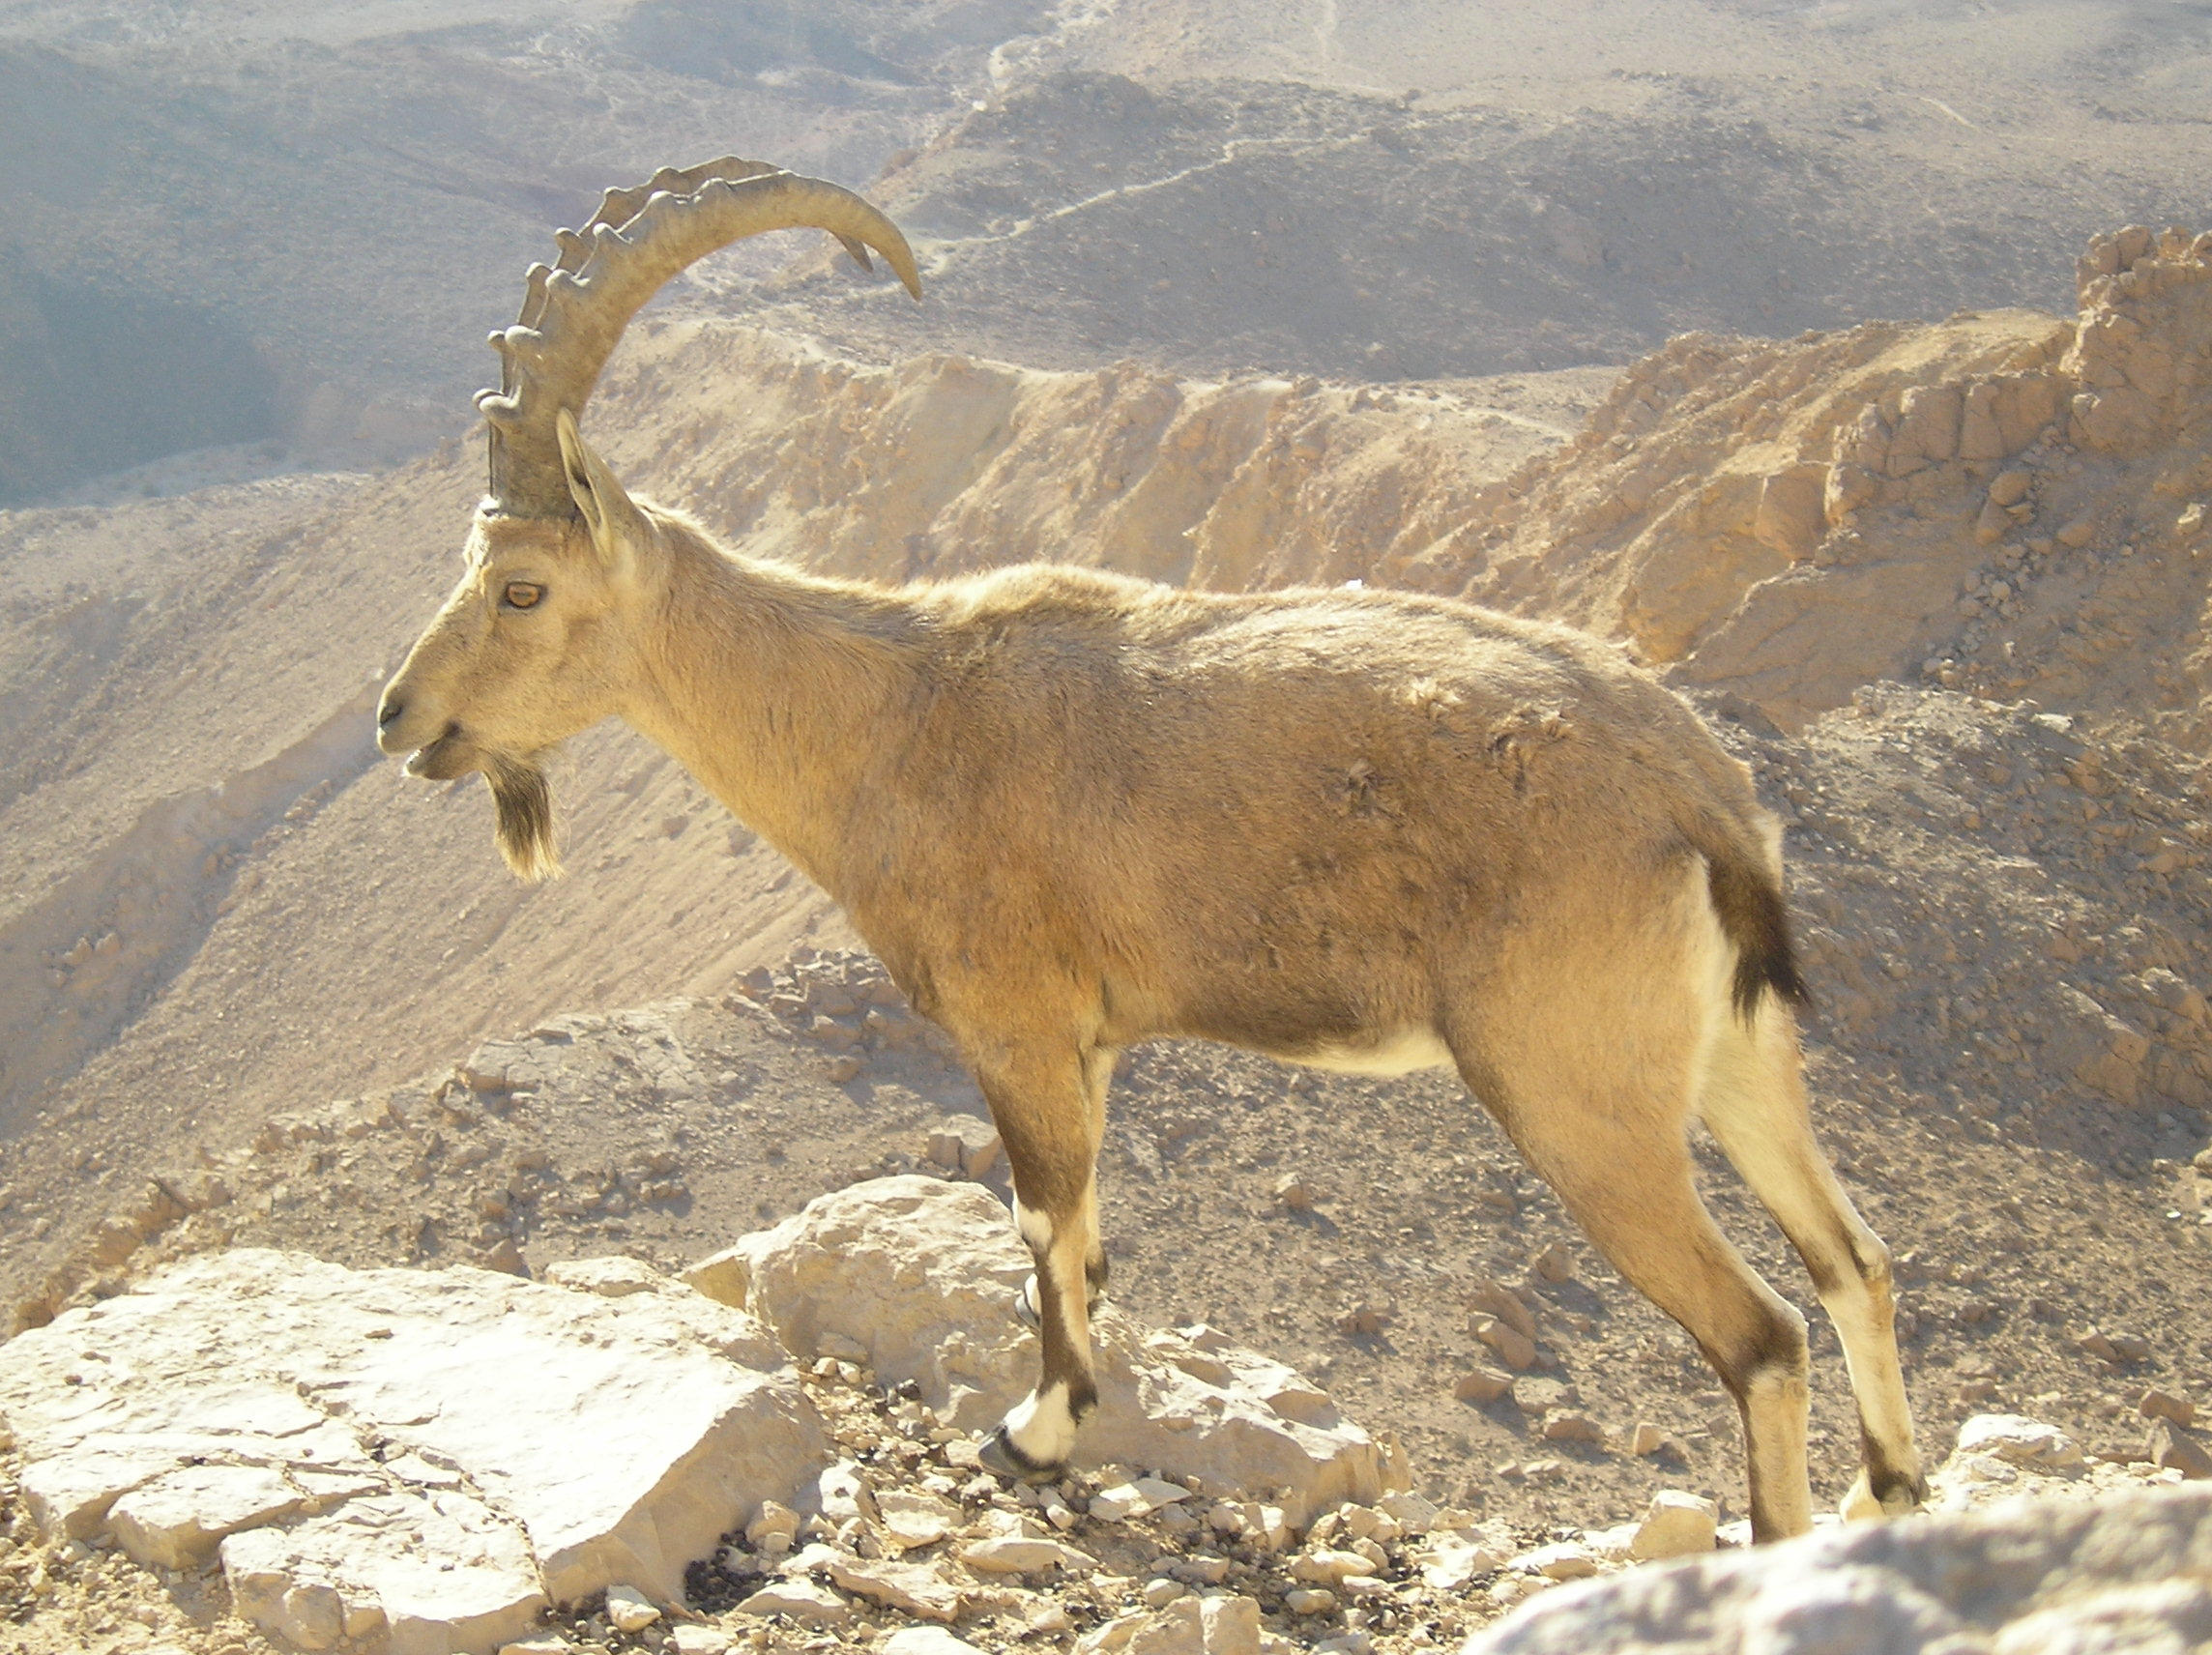 https://upload.wikimedia.org/wikipedia/commons/7/75/Nubian_Ibex_in_Negev.JPG